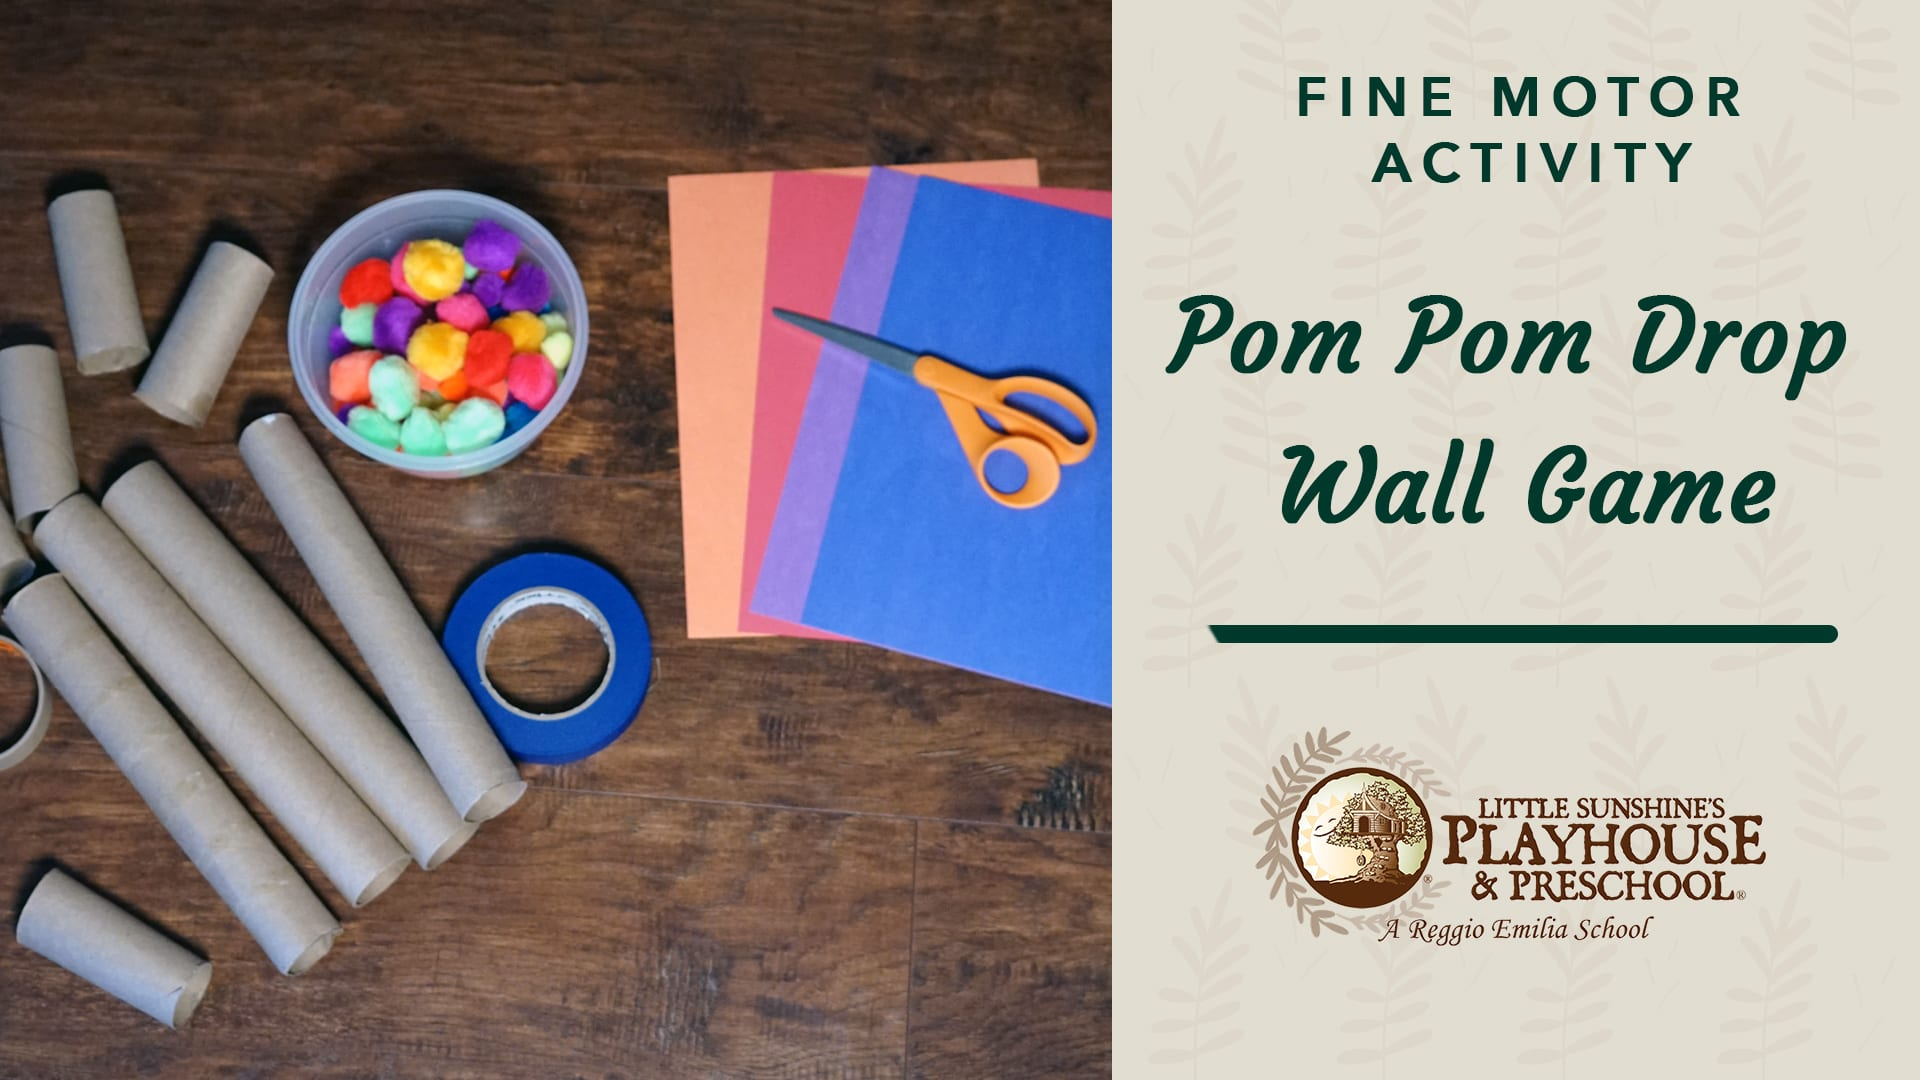 Pom Pom Drop Wall Game